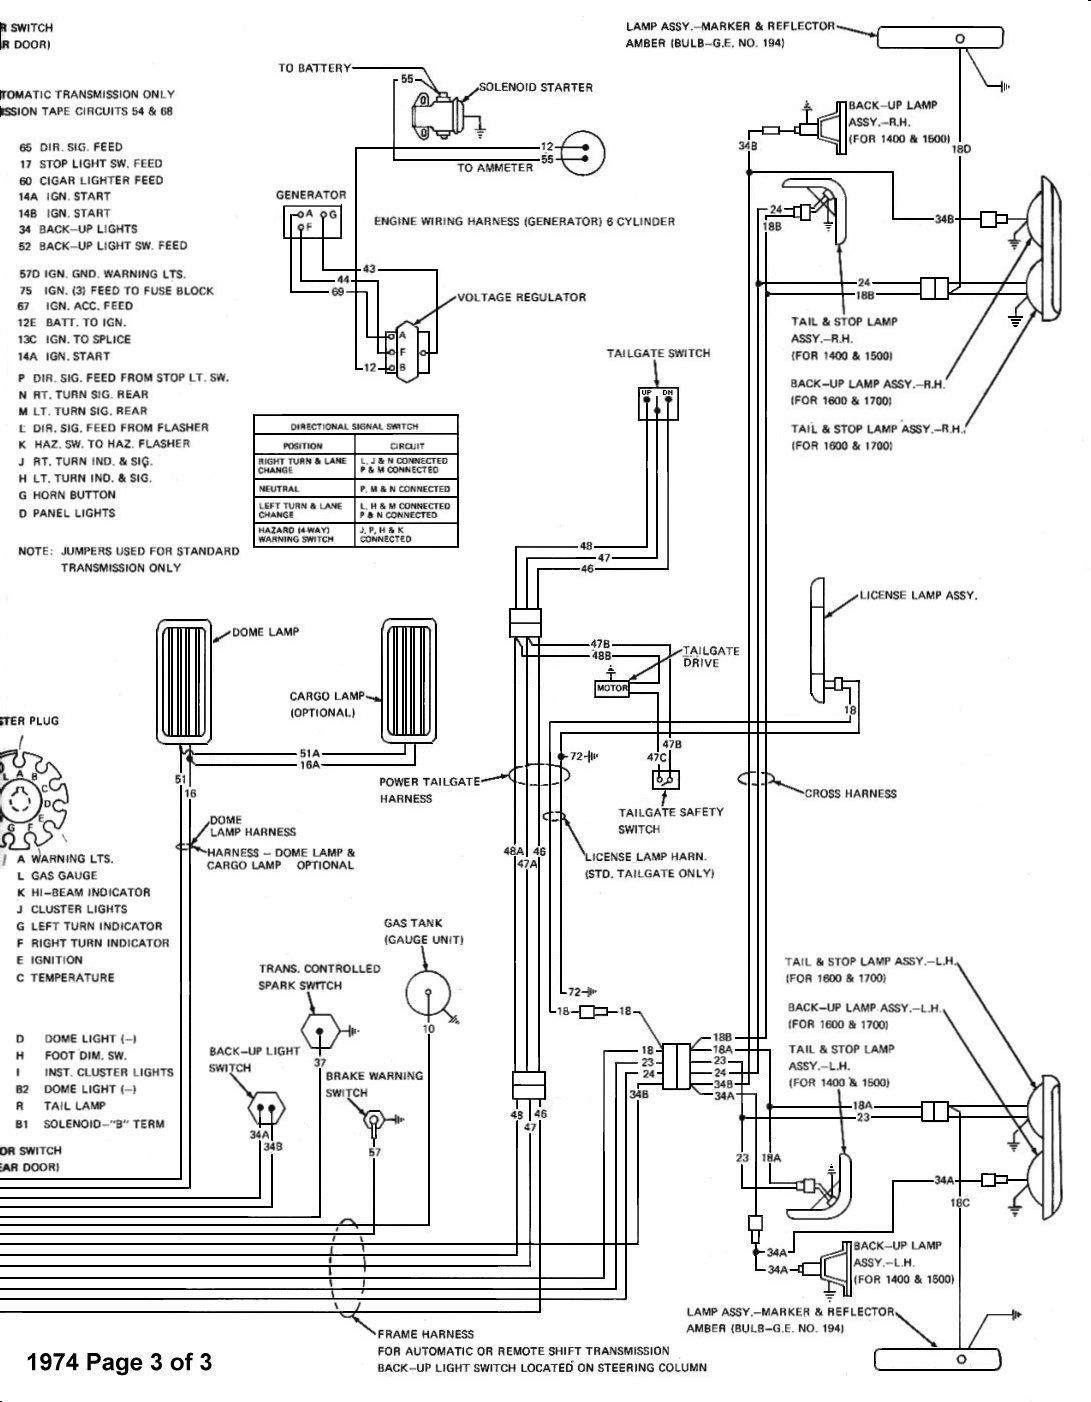 96 jeep cherokee wiring diagram blower motor fuse international jeep tj blower motor wiring diagram 96 [ 1091 x 1402 Pixel ]